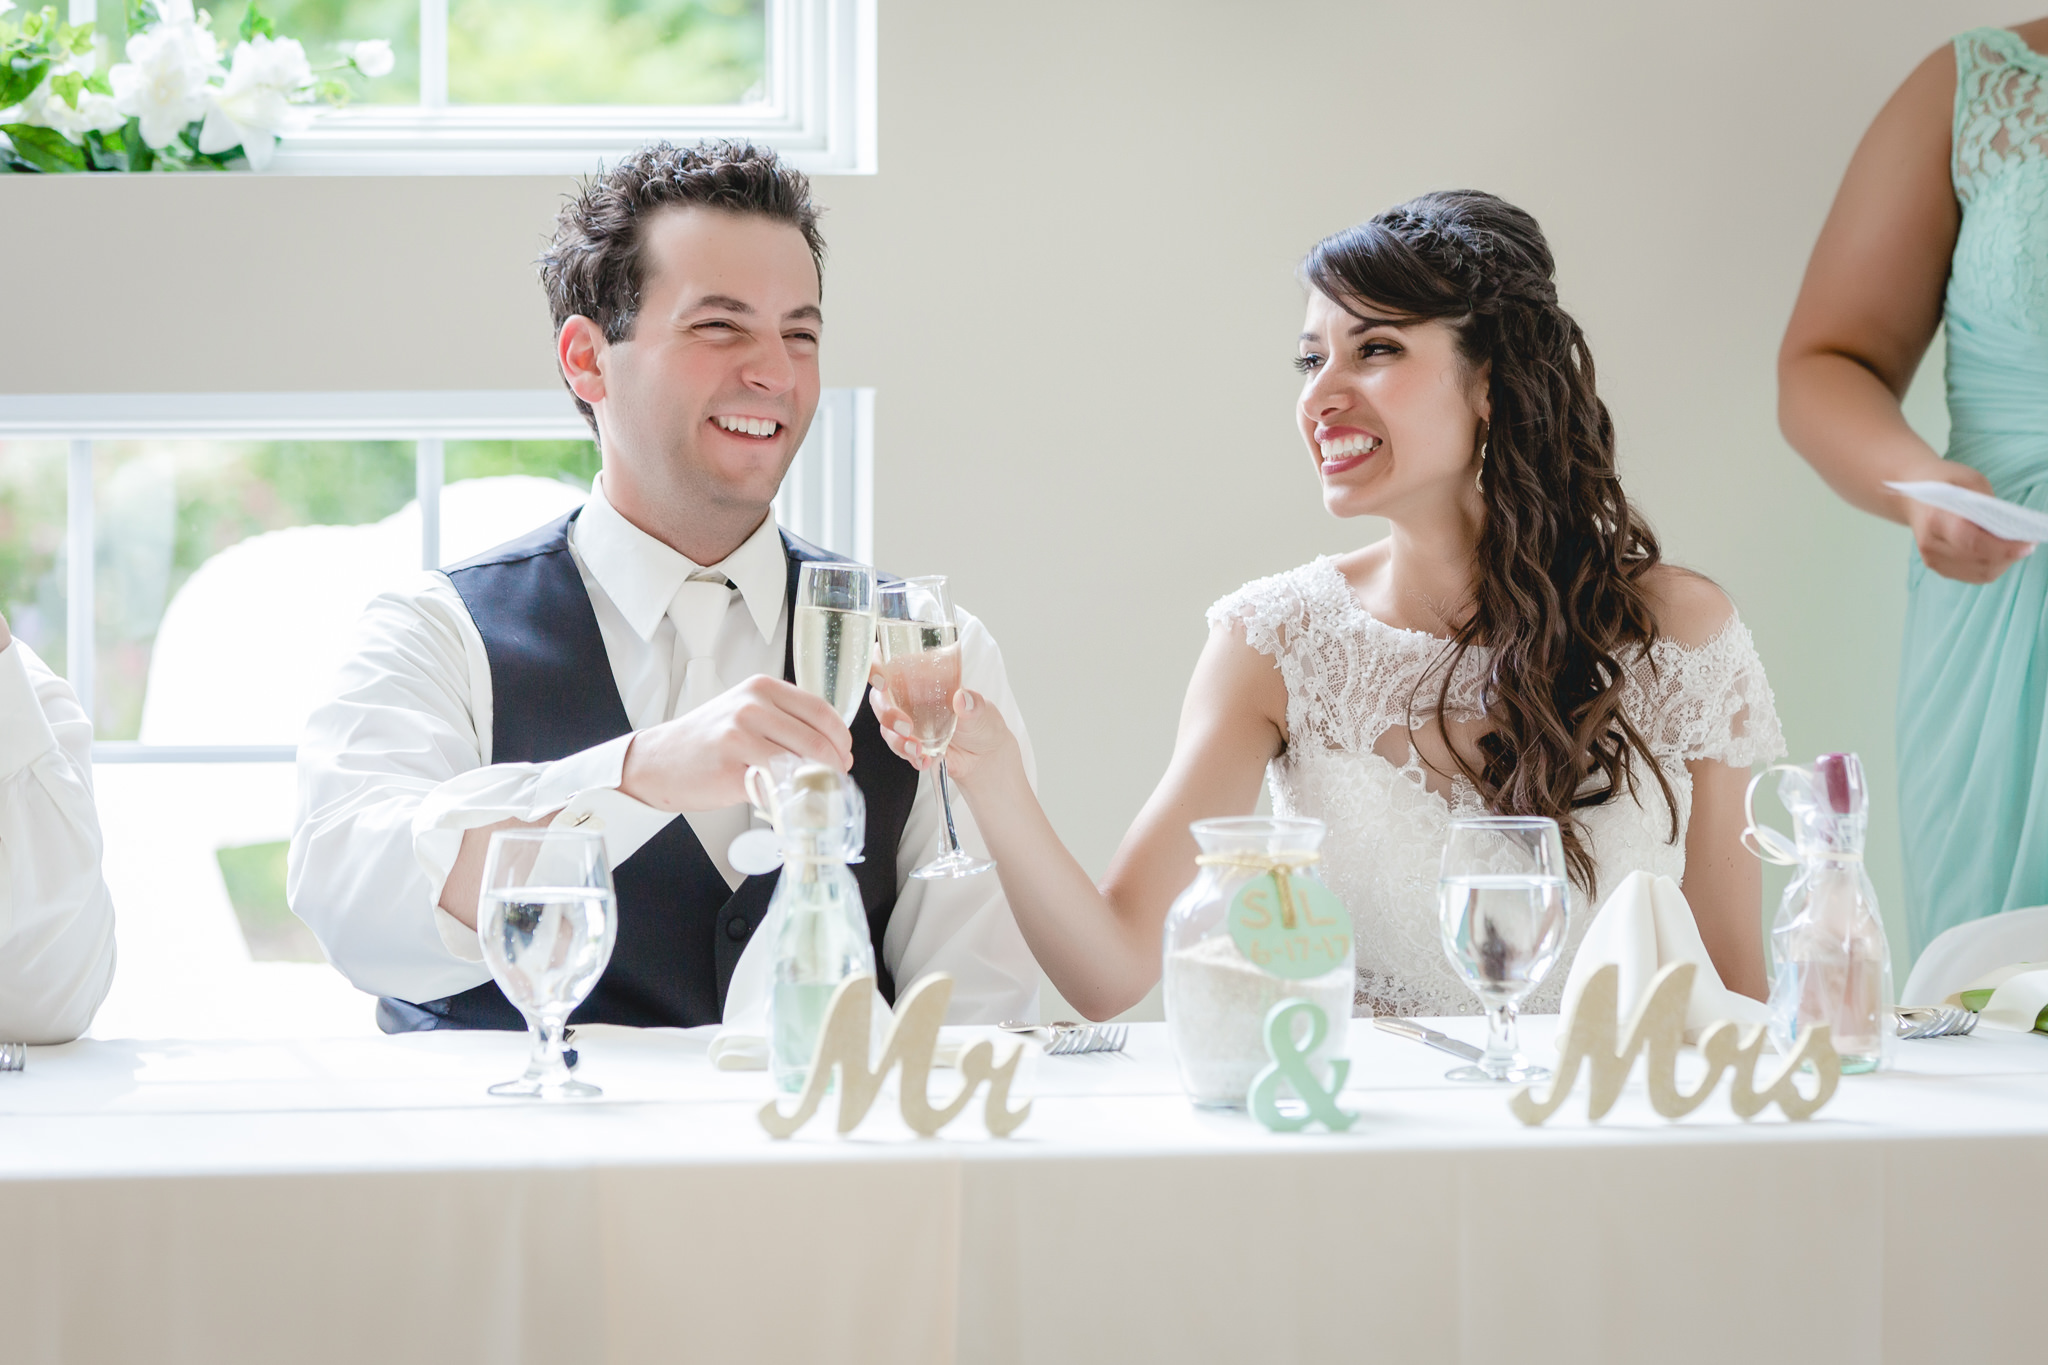 Bride and groom toasting each other at their wedding reception